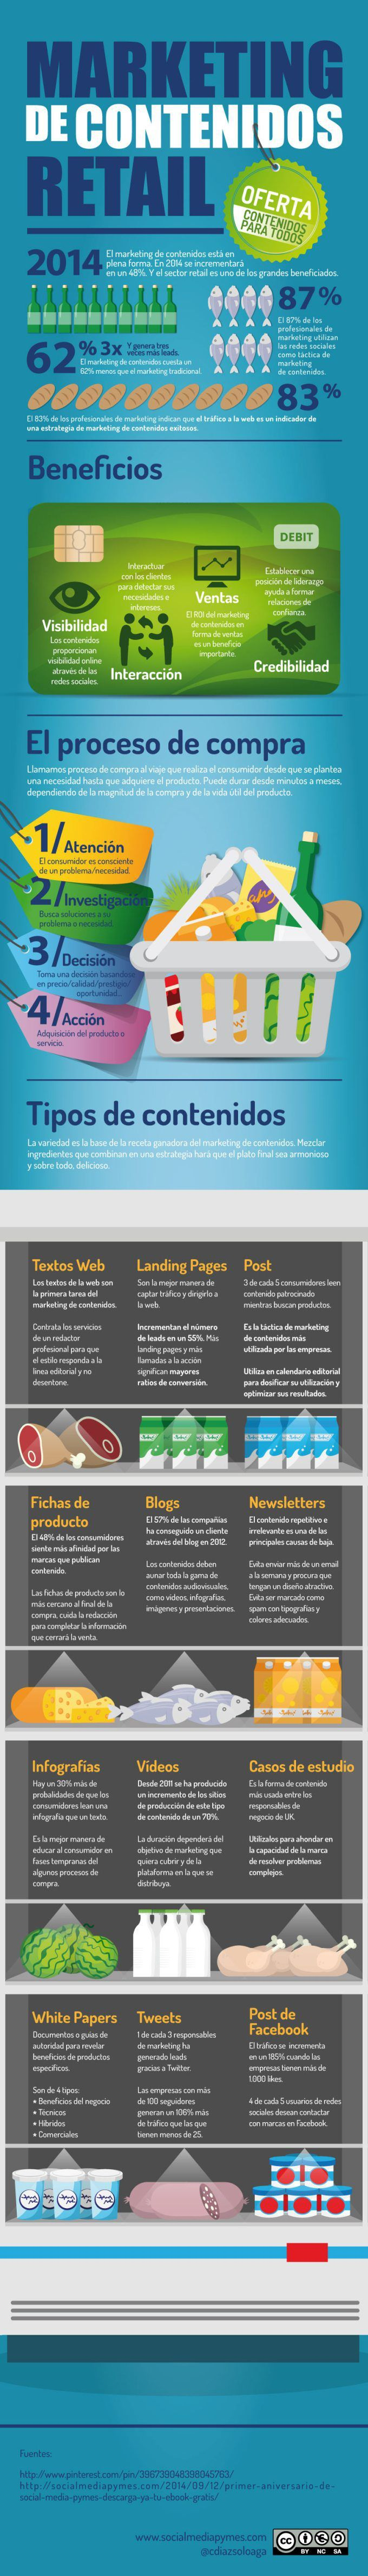 marketing de contenidos y retail